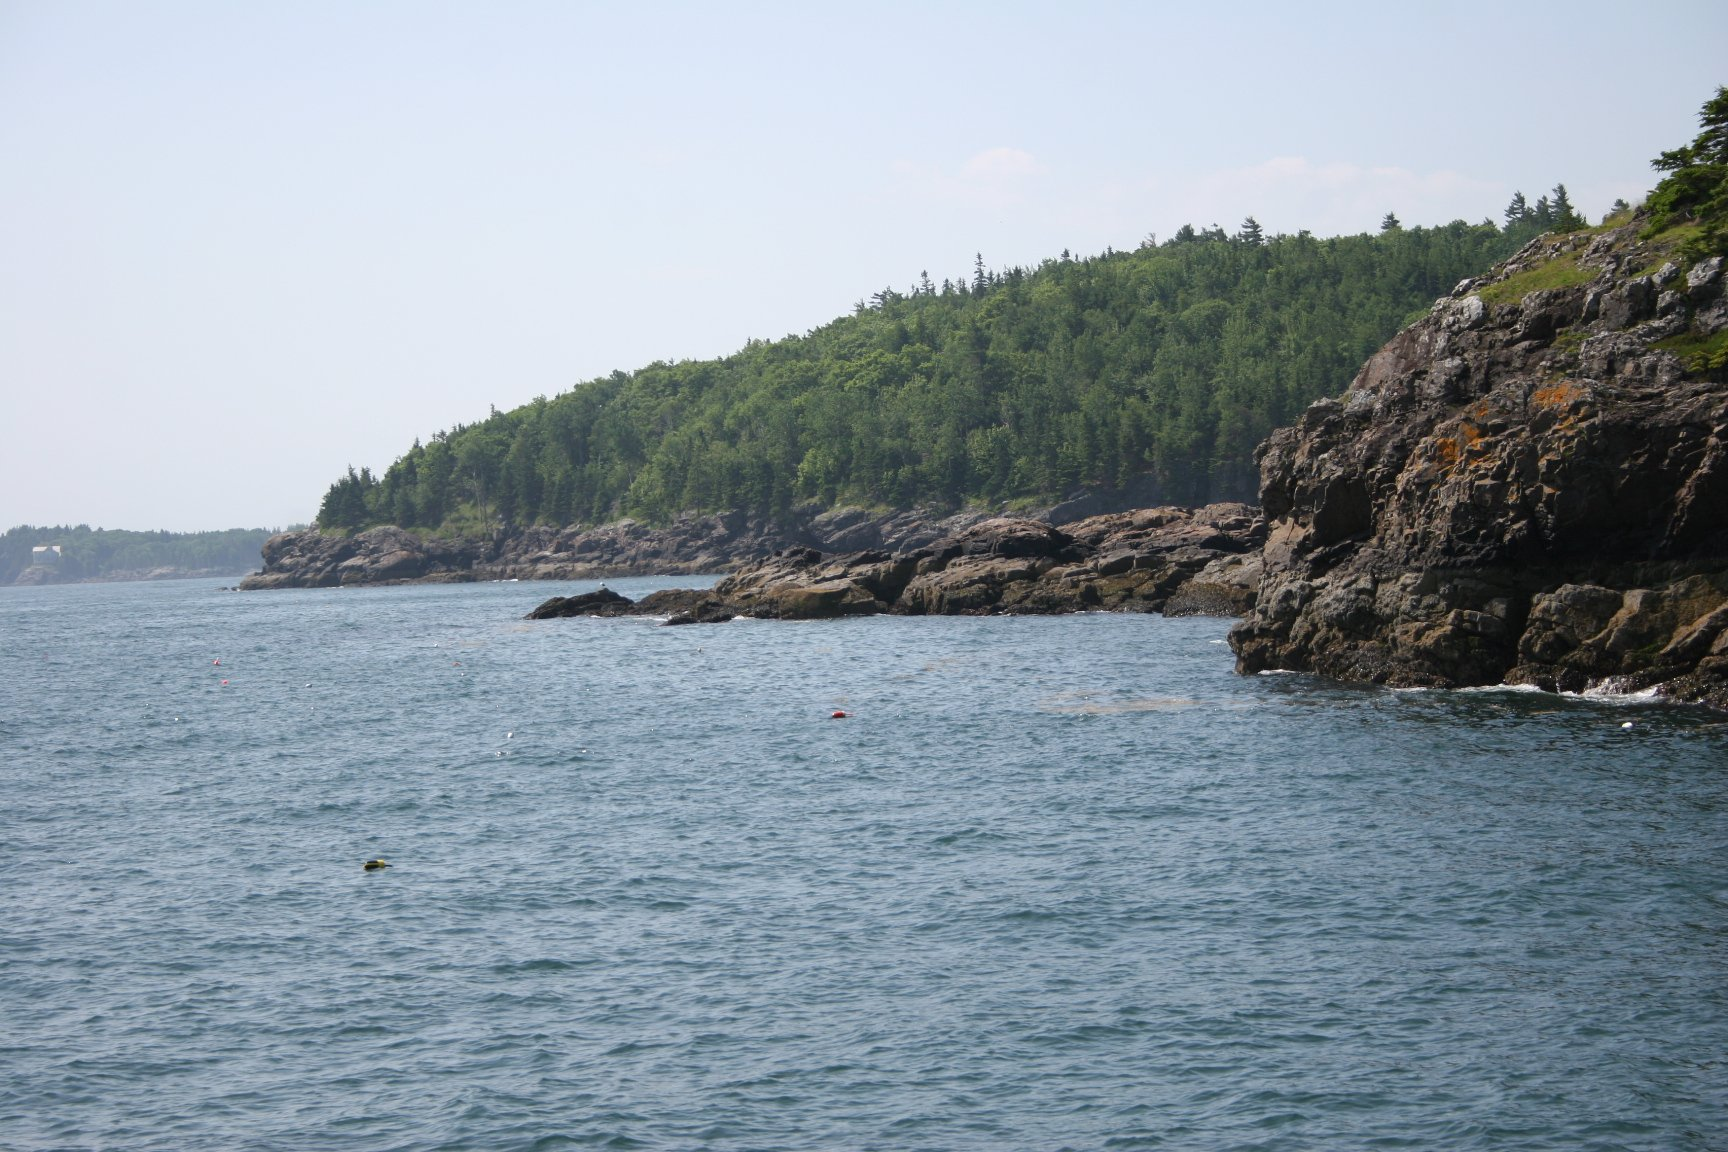 The Islands of Acadia